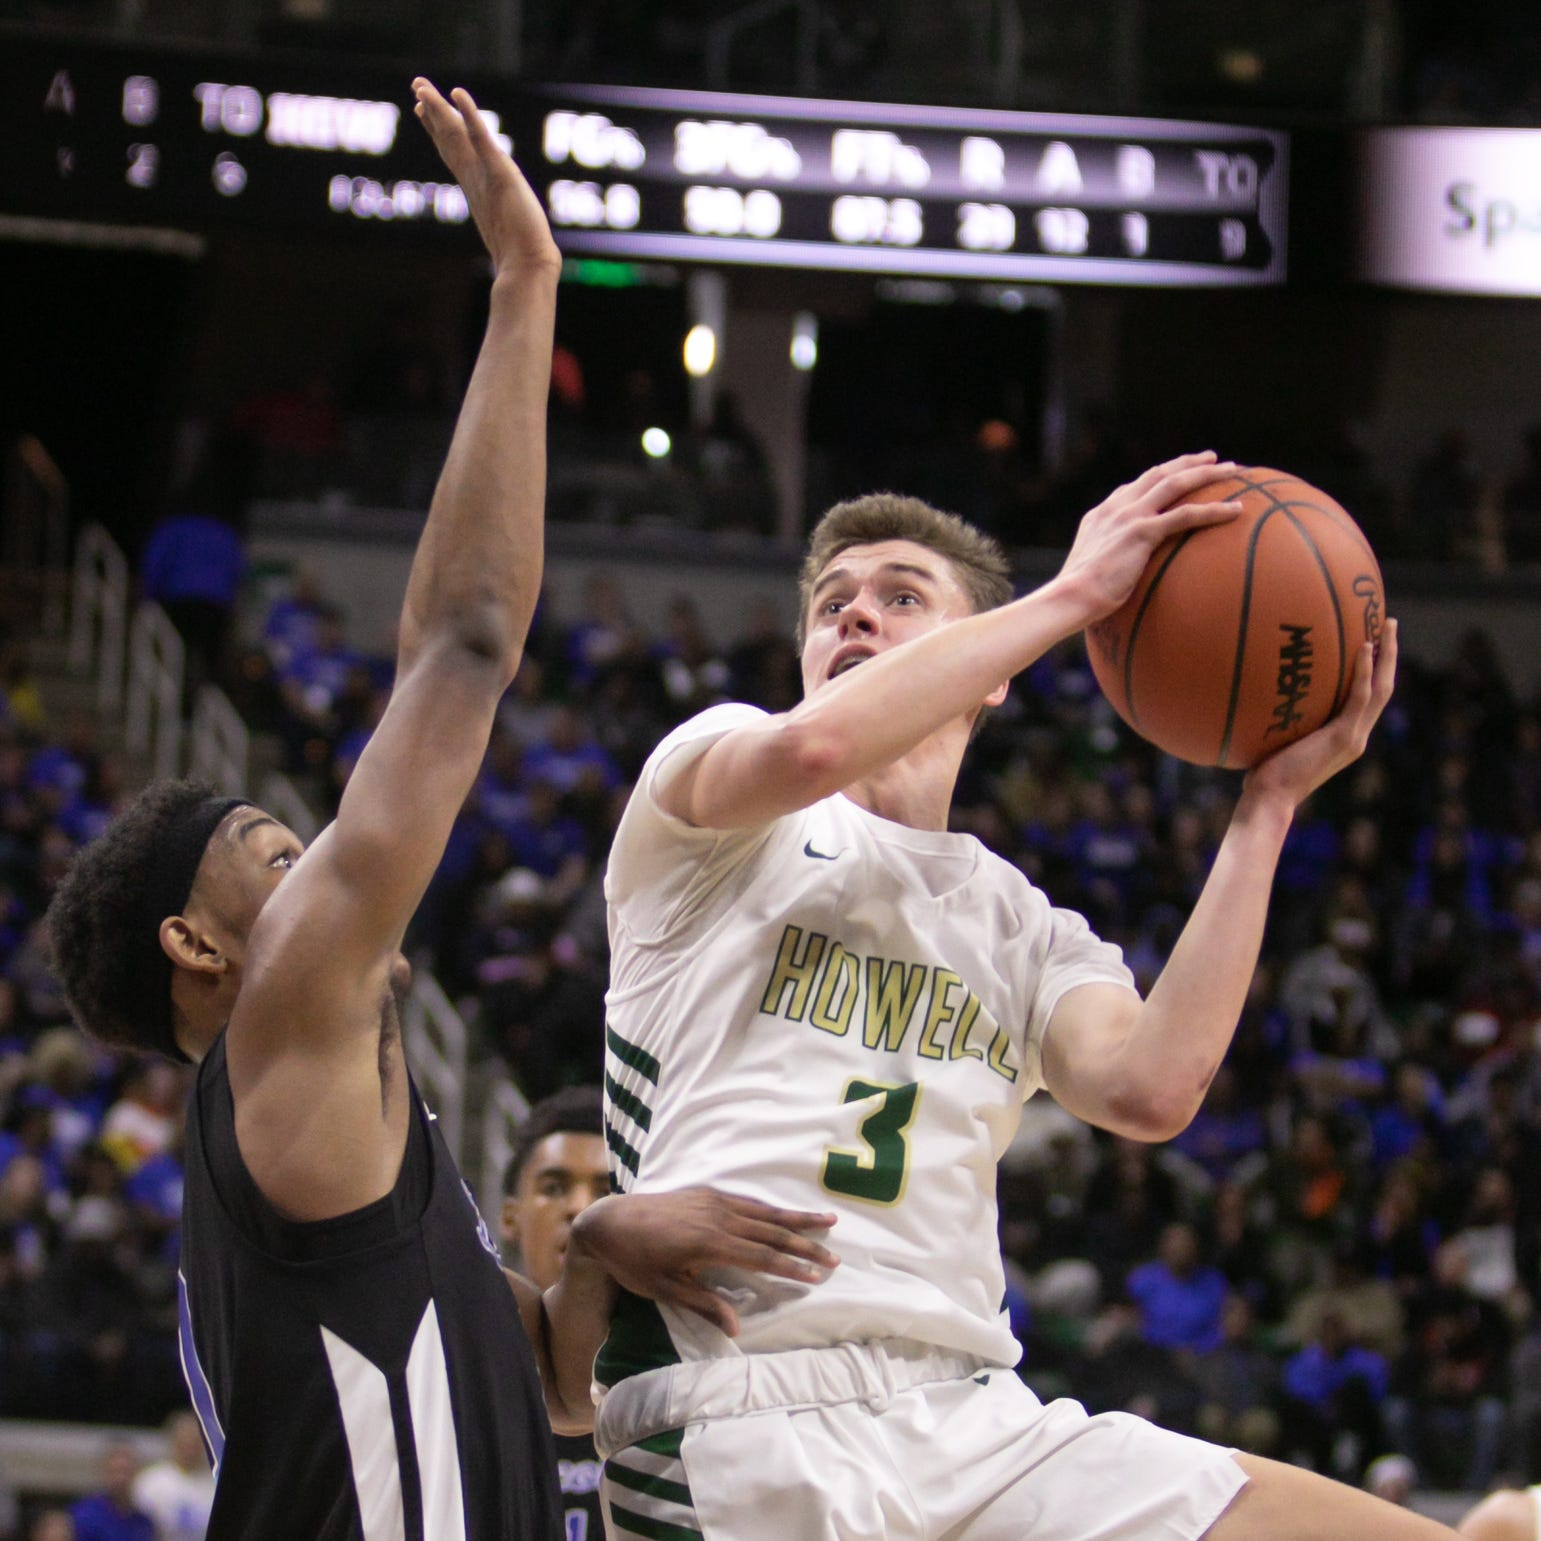 Howell basketball run helps Kip French land scholarship with Concordia